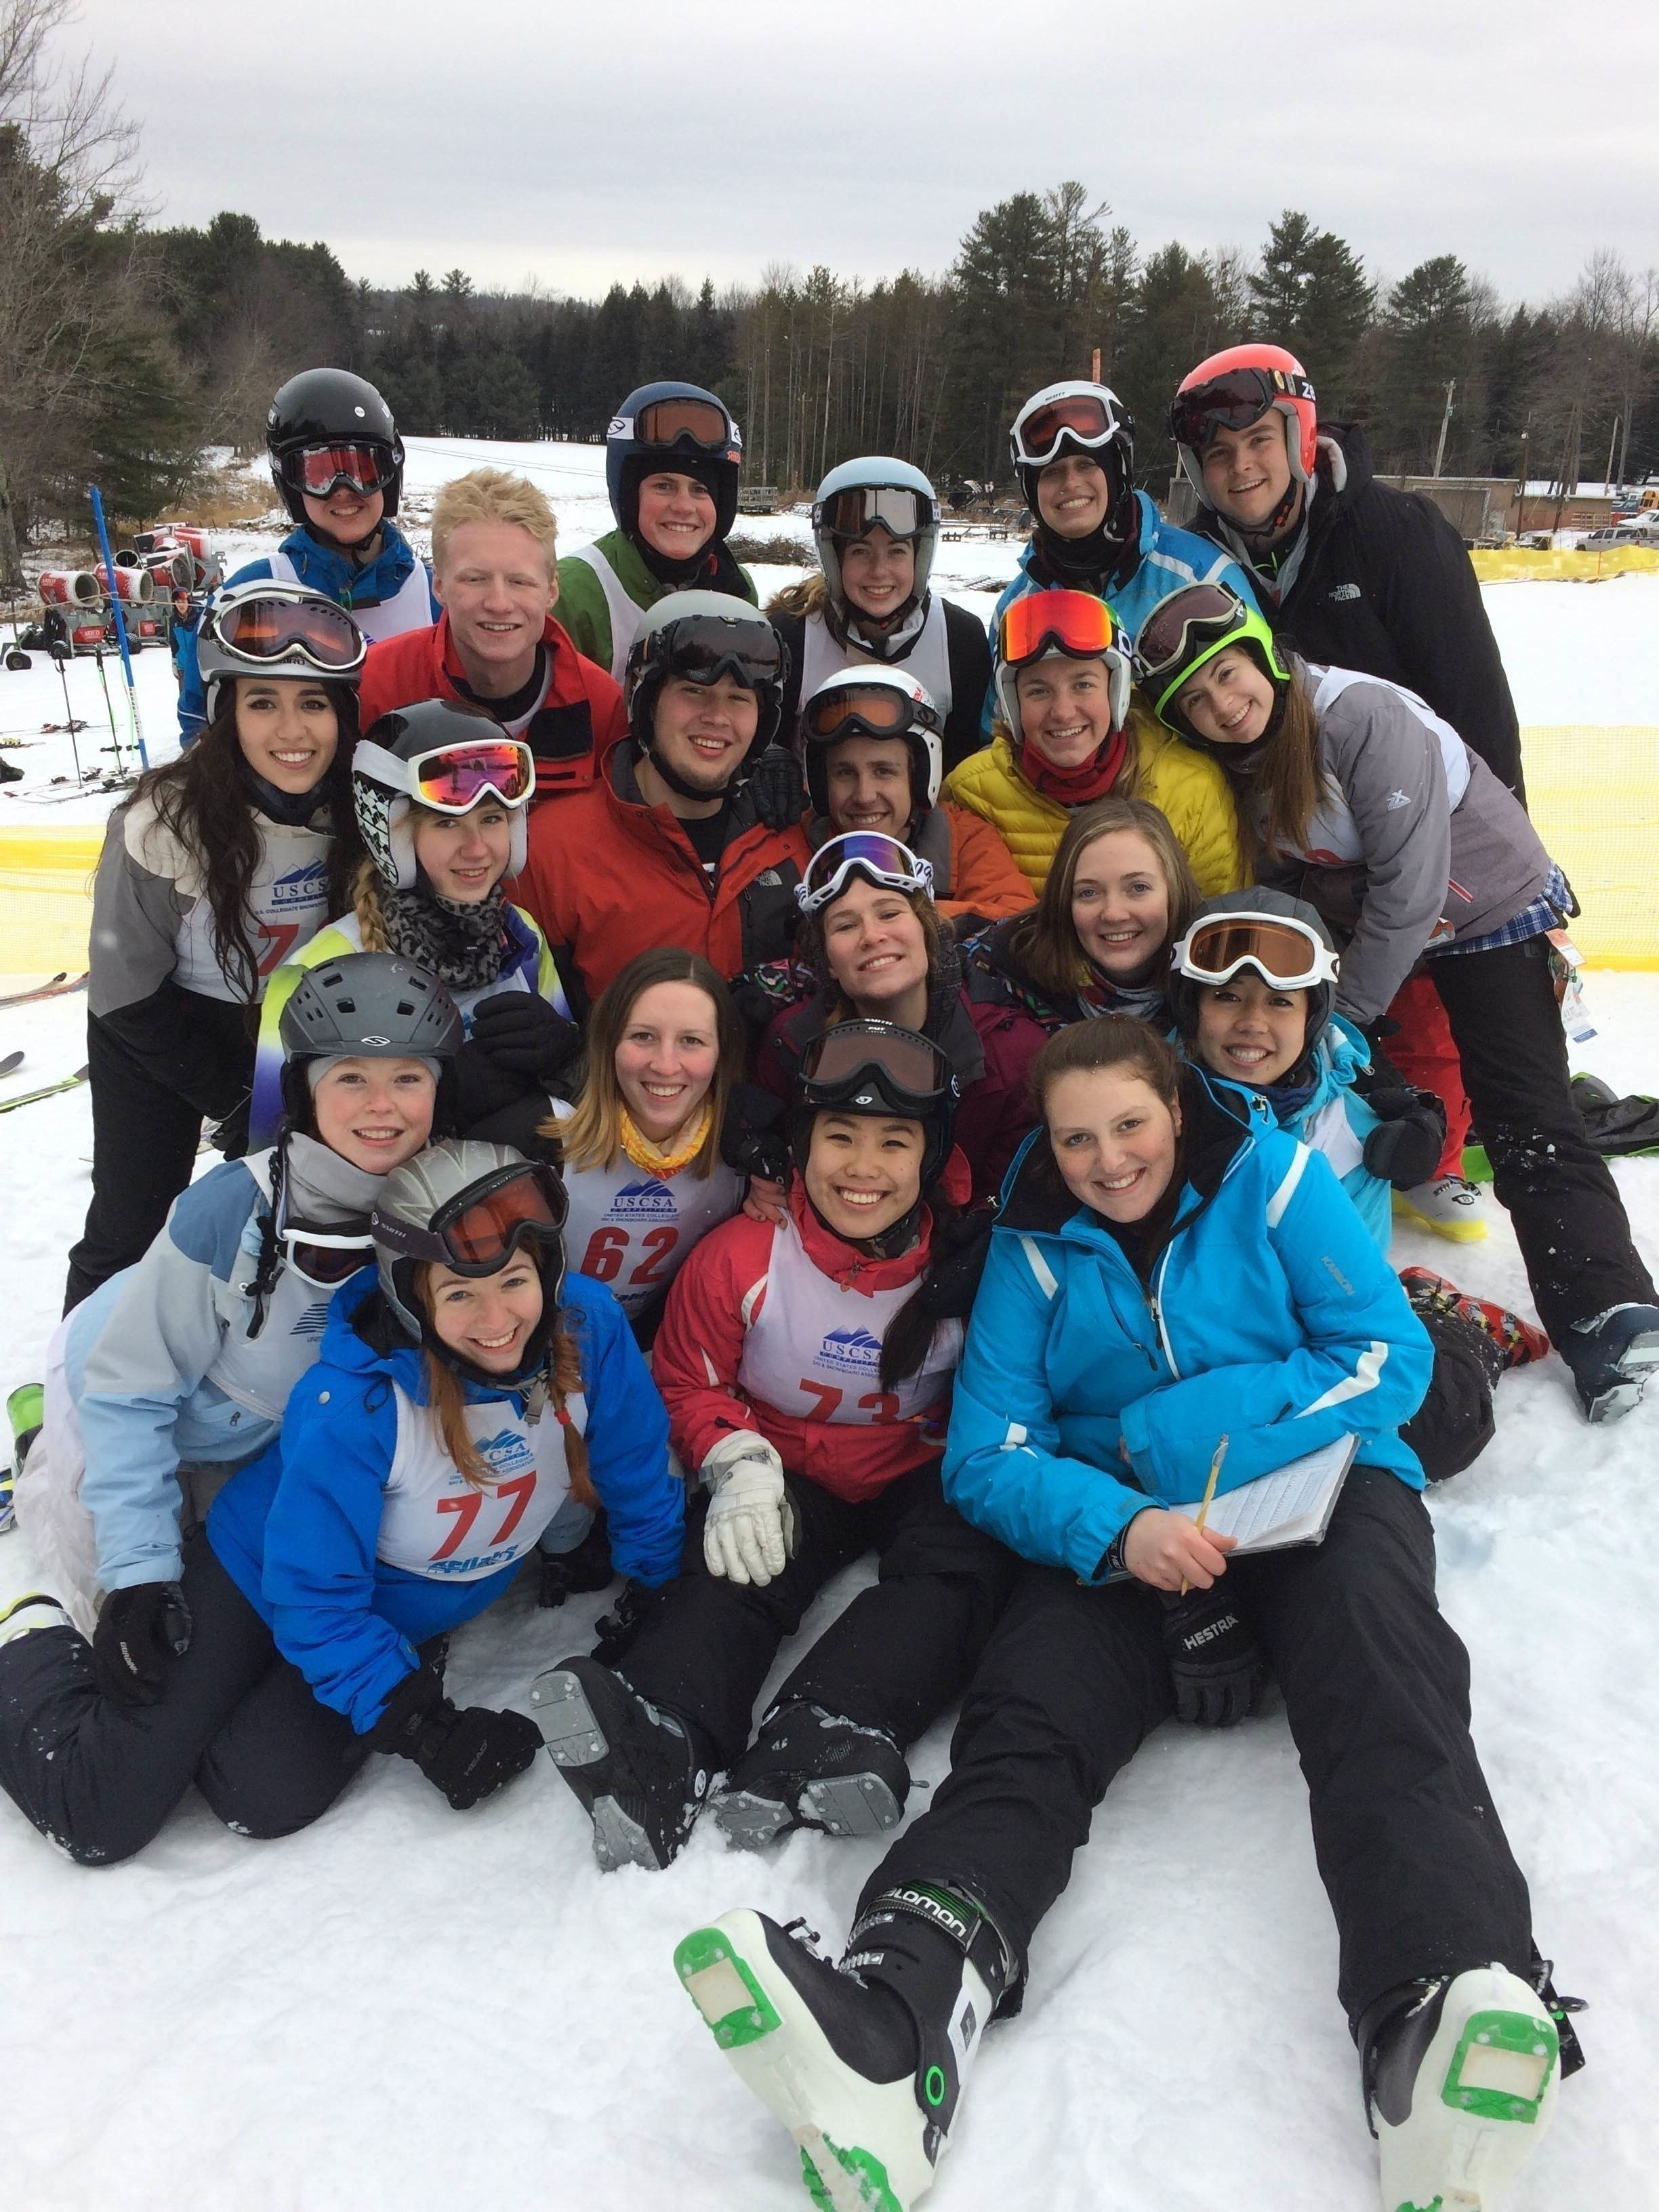 The ski and snowboard team poses together after a competition. (credit: Sloane Macklin)